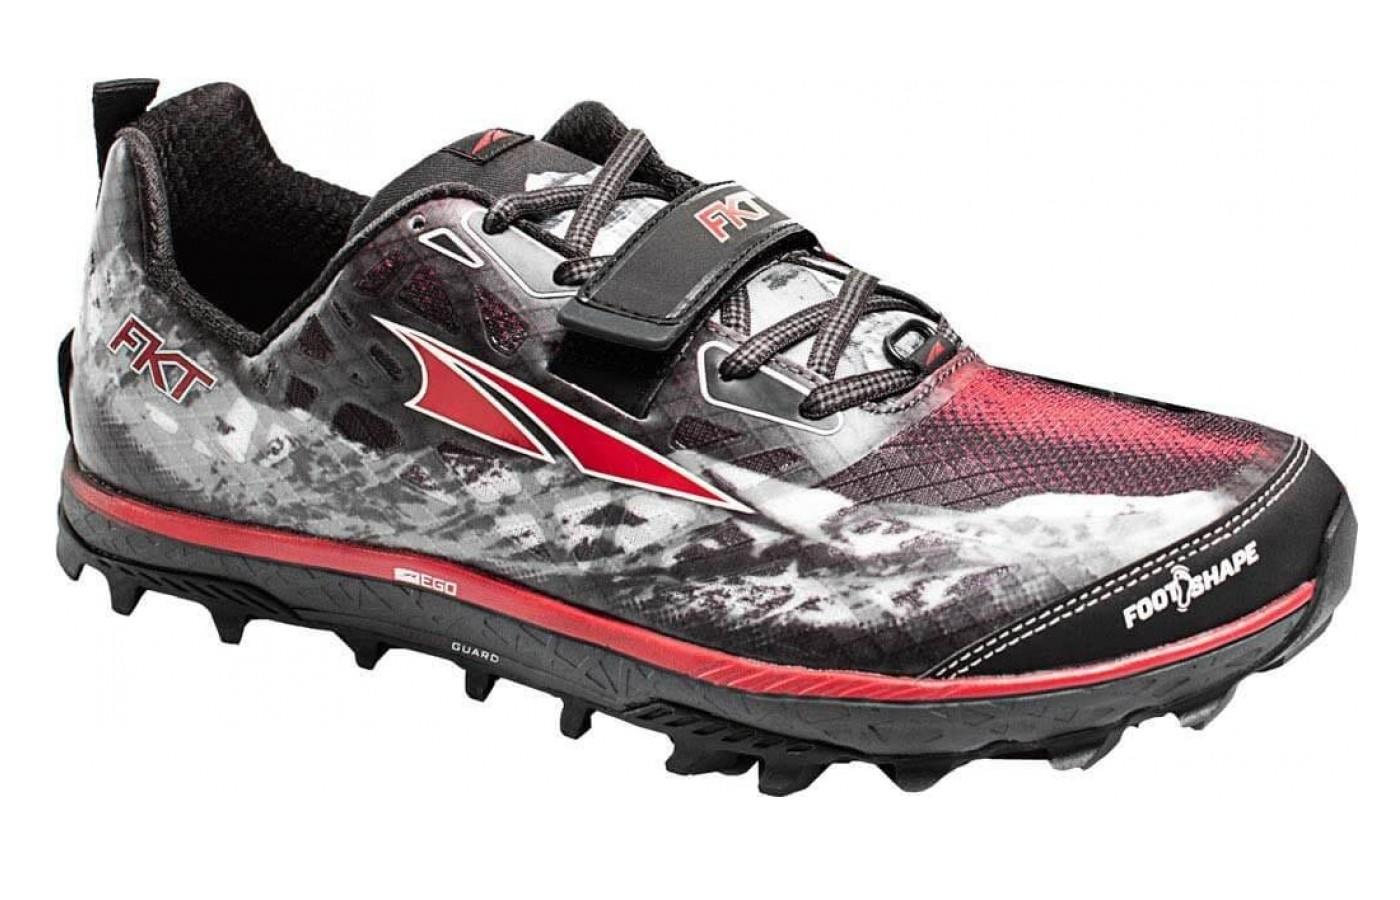 The Altra King MT can tackle the toughest terrain